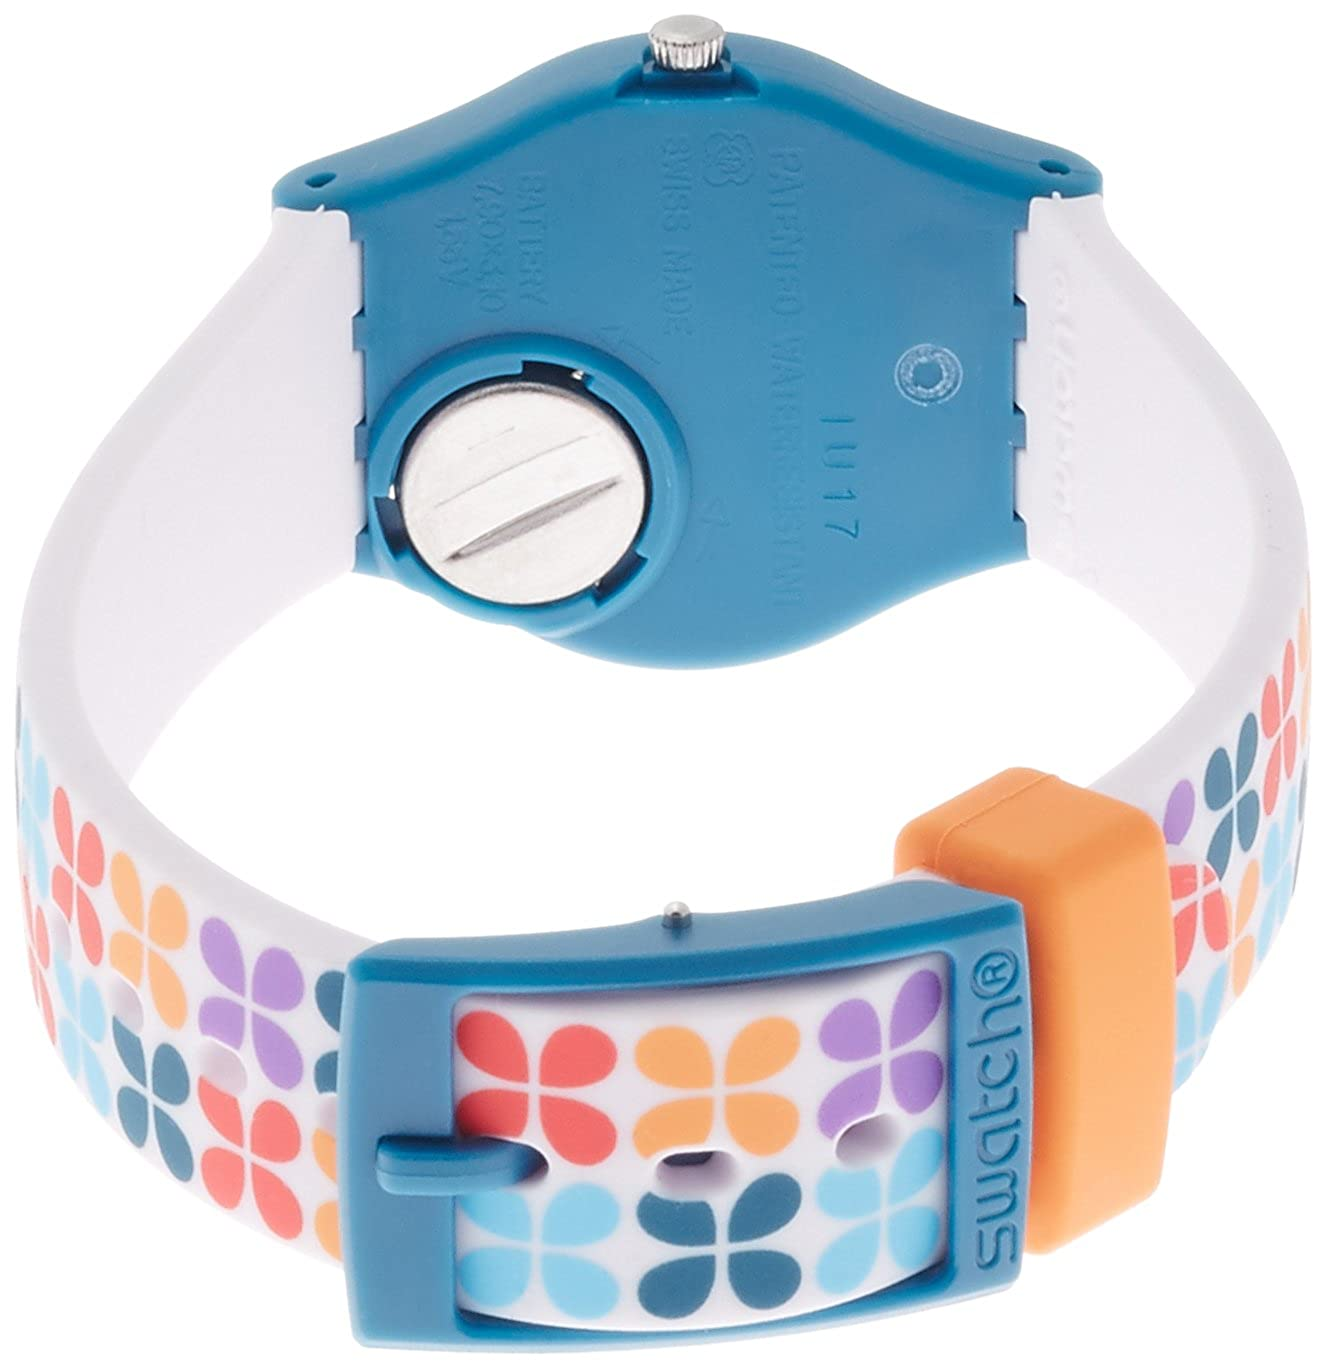 Amazon.com: Swatch Womens Paseo de Gracia Multicolored Plastic and Silicone Watch LN151: Watches